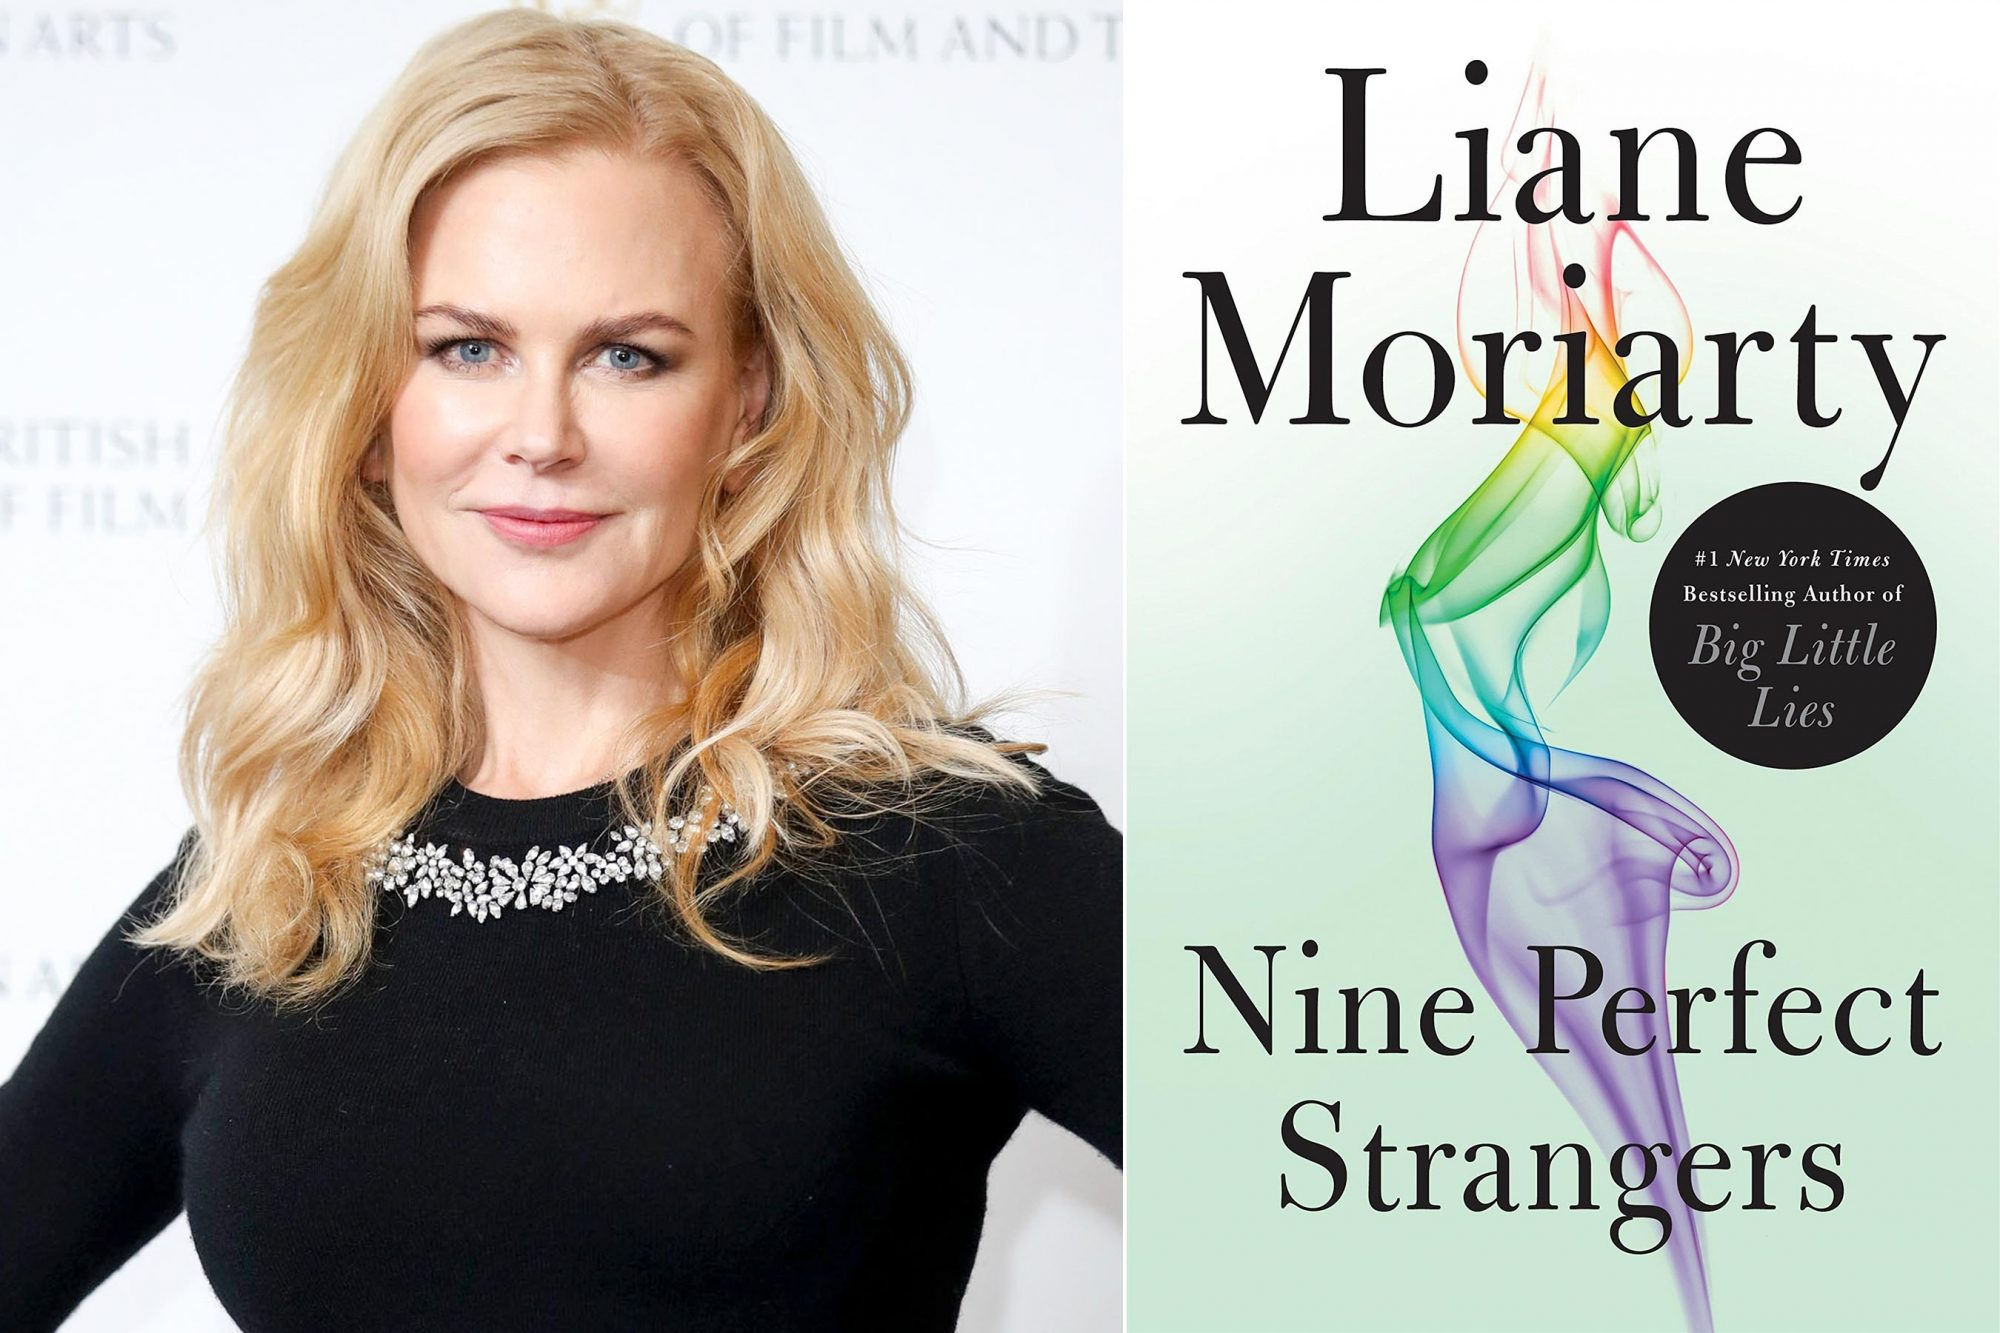 LONDON, ENGLAND - NOVEMBER 21: Nicole Kidman during a photocall for her 'A Life In Pictures' retrospective at BAFTA on November 21, 2018 in London, England. (Photo by Mike Marsland/WireImage) Nine Perfect Strangers Hardcover – November 6, 2018 by Liane Moriarty (Author) Publisher: Flatiron Books (November 6, 2018)